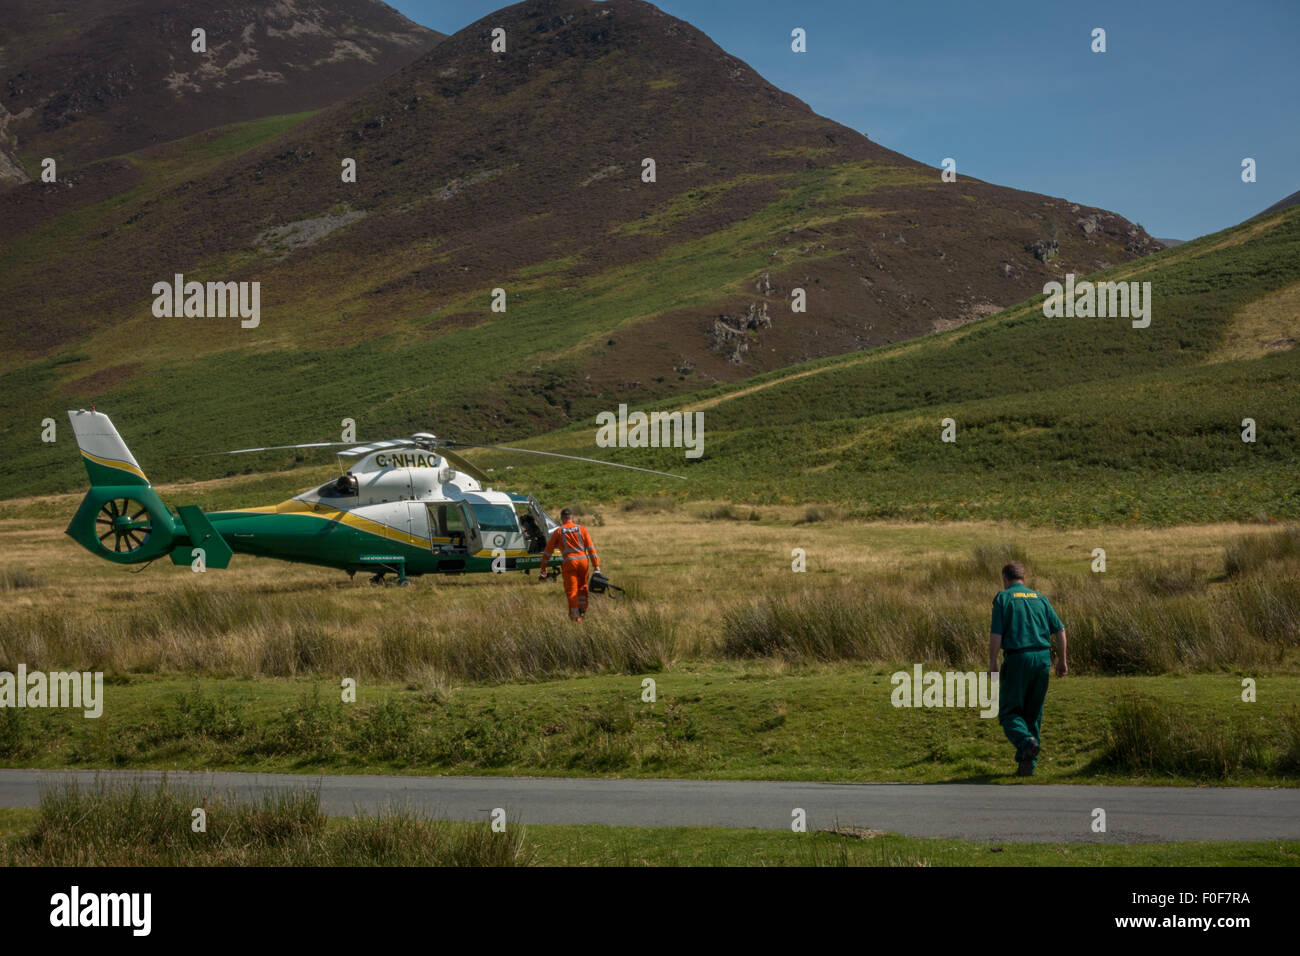 Great North Air Ambulance carrying equipment to the helicopter - on call in Buttermere, Cumbria. - Stock Image